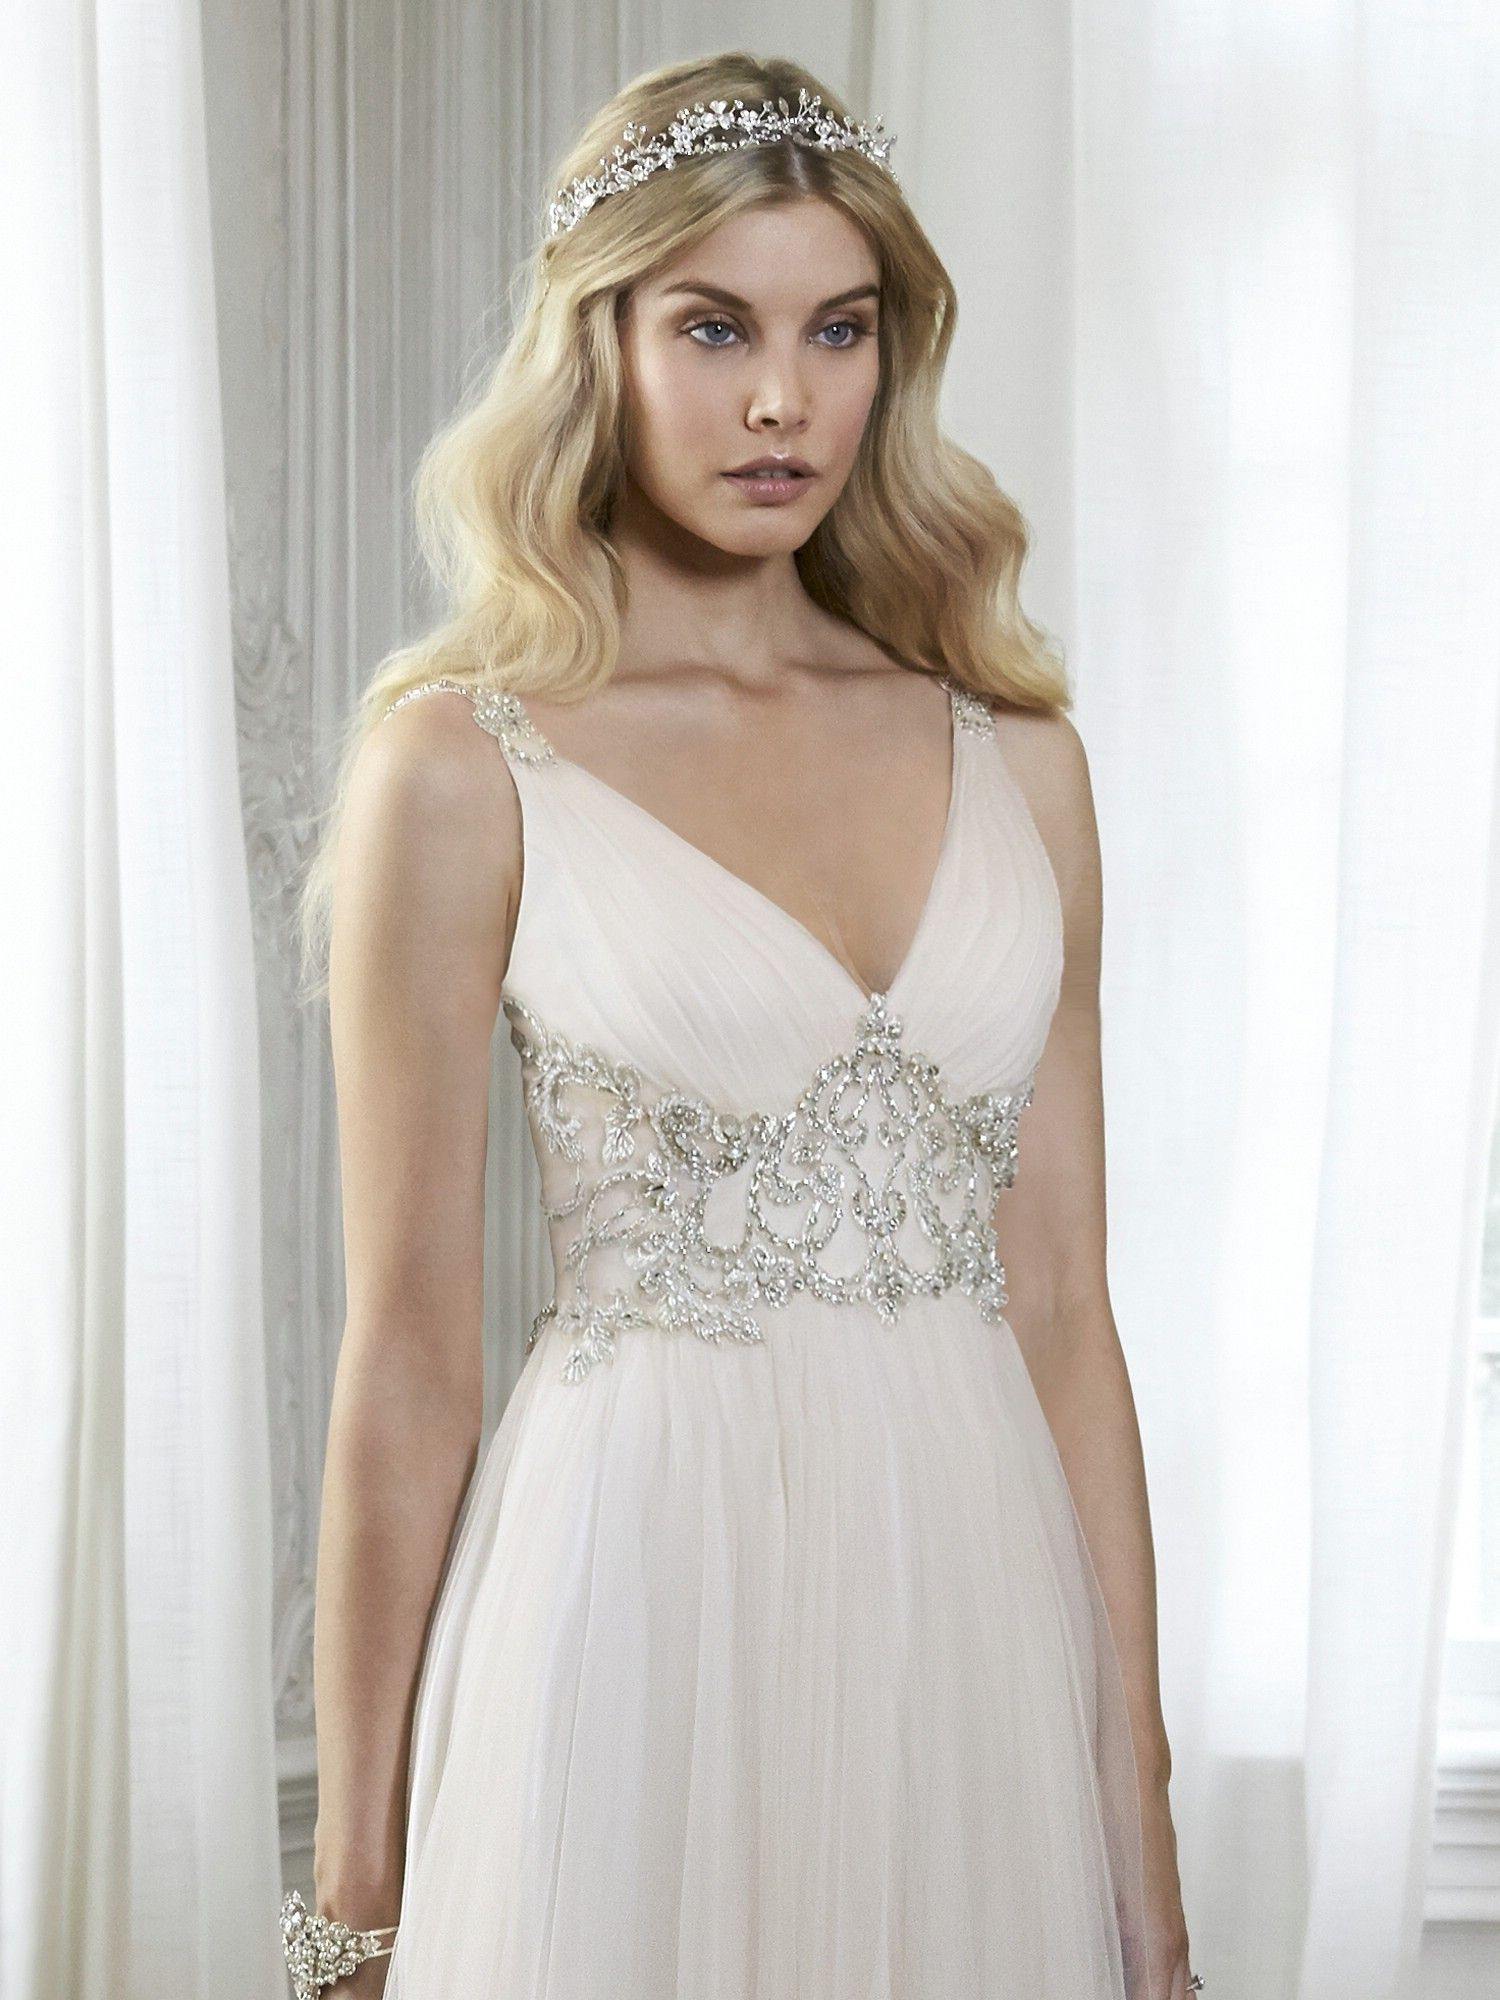 d70e8c689d0 Wedding Dress Phyllis by Maggie Sottero R 14000 (price before R 26000)